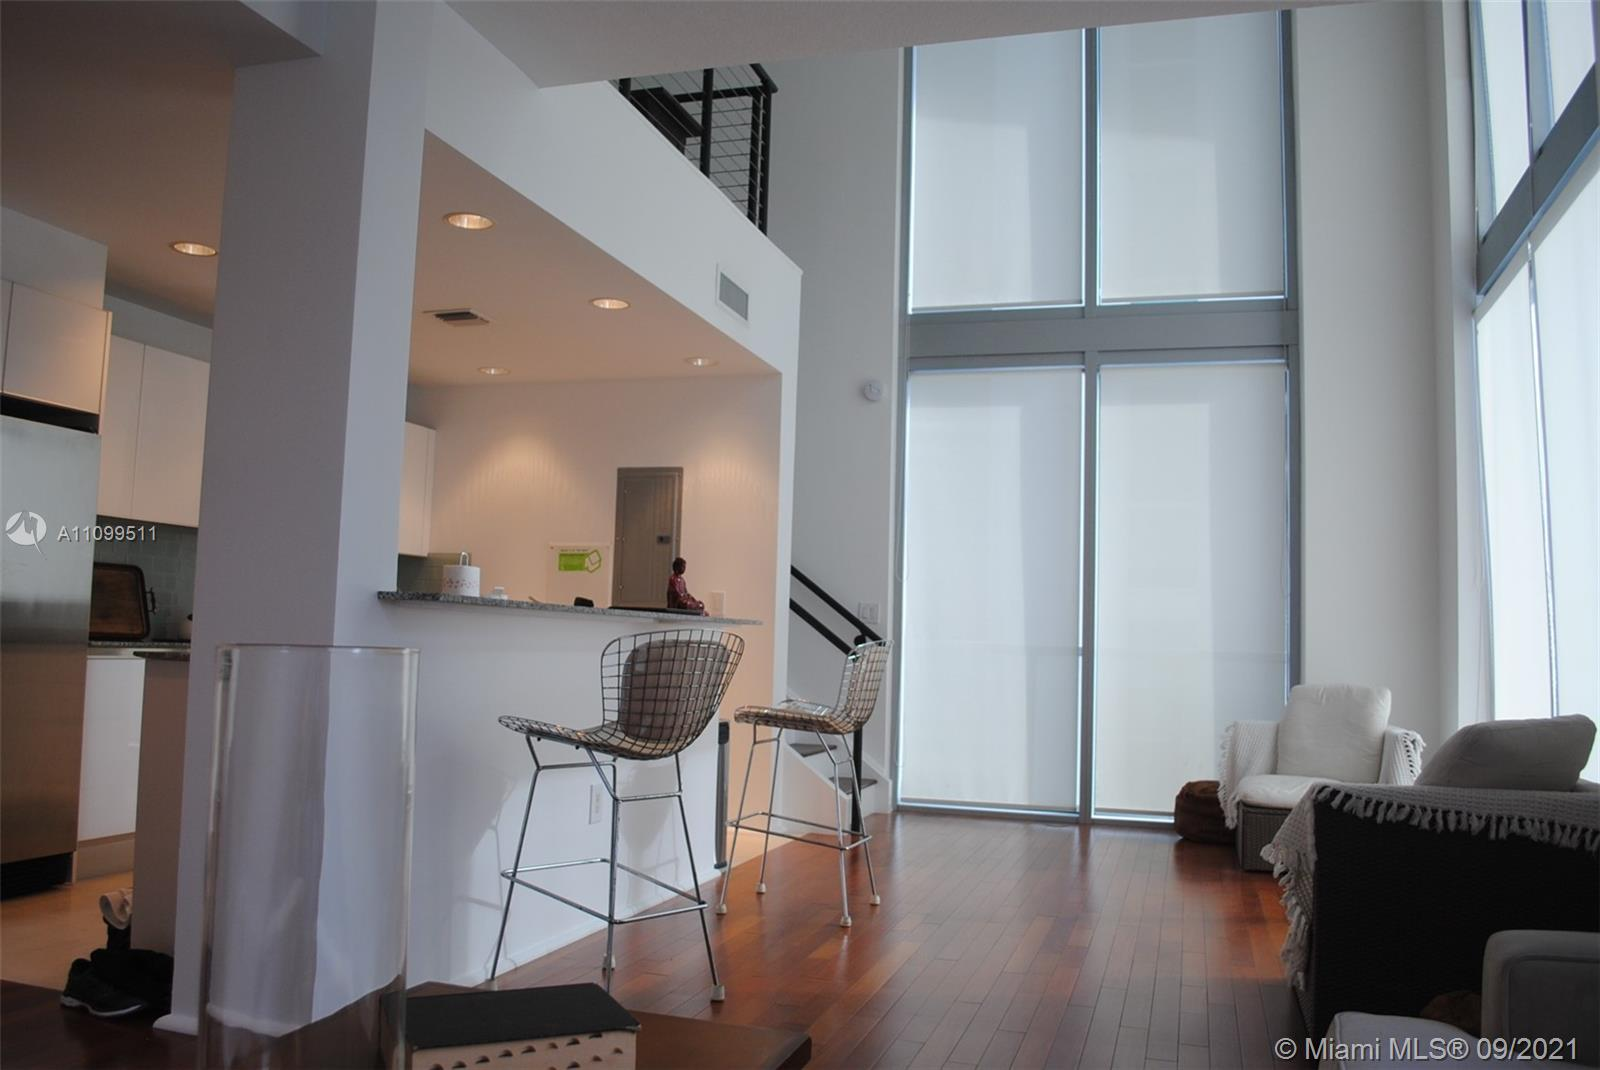 Beautiful furnished duplex loft corner unit + den with lots of light. 1200 Sq. Ft. Very few units like this one! Full spacious bathroom upstairs with two sinks plus half bathroom downstairs. Brazilian cherry wood floors throughout + marble in the kitchen. One valet parking included. Unit in impeccable condition. Very competitive price per sq. ft. Great building amenities and great location. Basic cable included as provided by the association! Walking distance to restaurants, shops and entertaining! A must see! Easy to show. Sorry no pets.